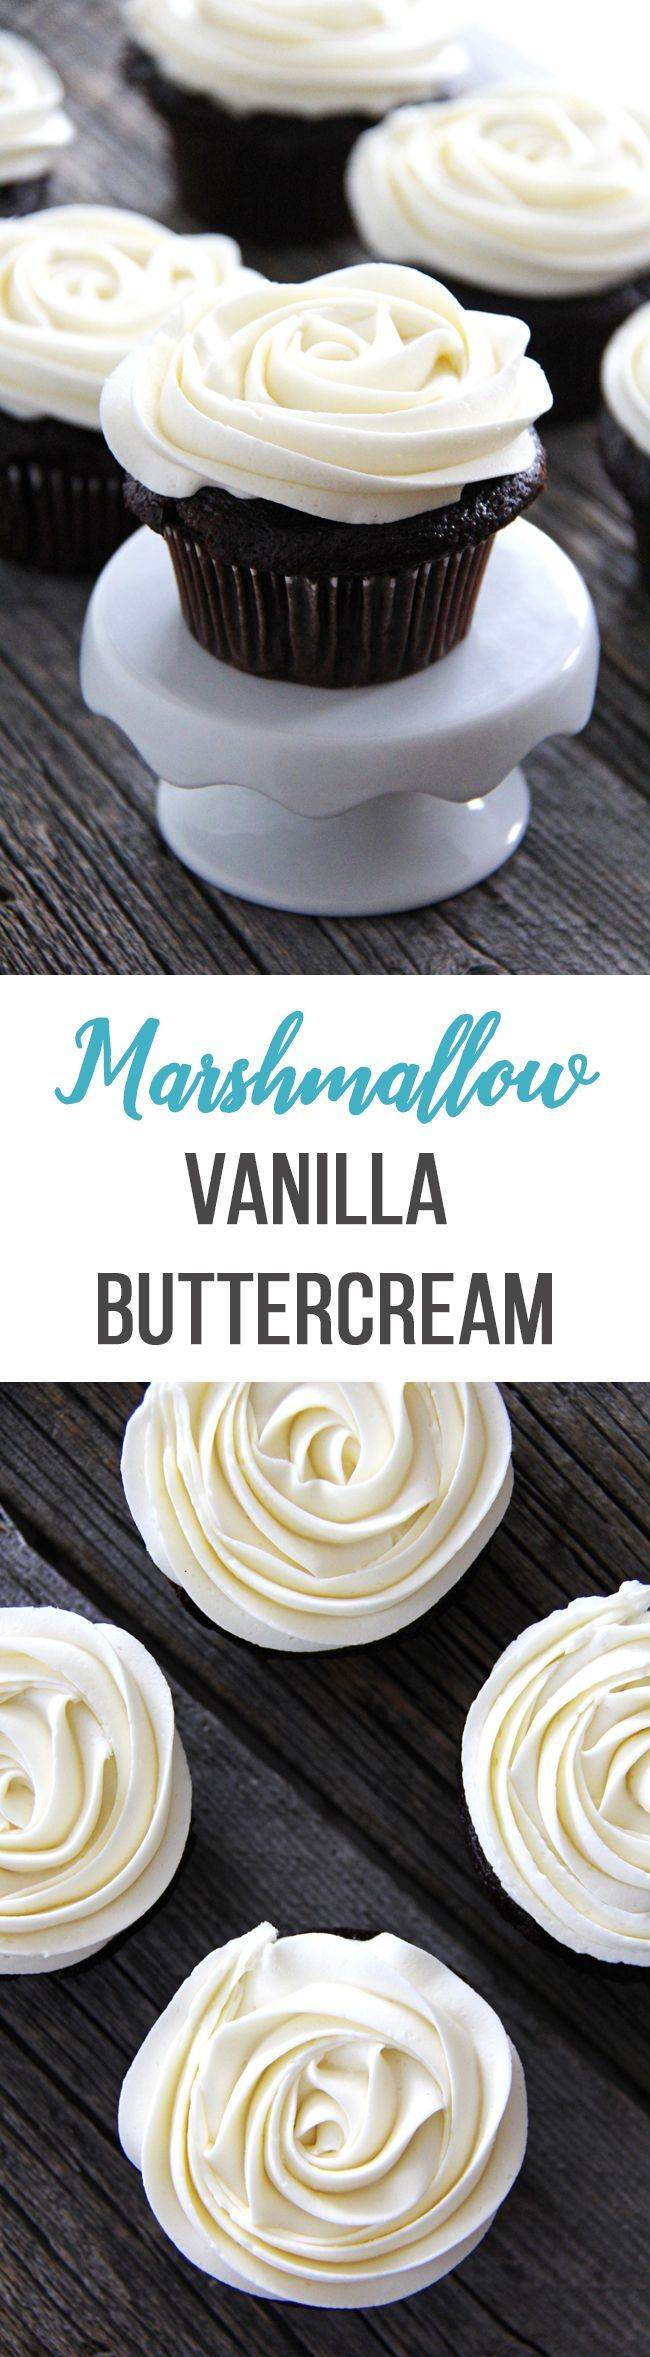 Marshmallow Vanilla Buttercream Frosting (Homemade Chocolate Ganache)